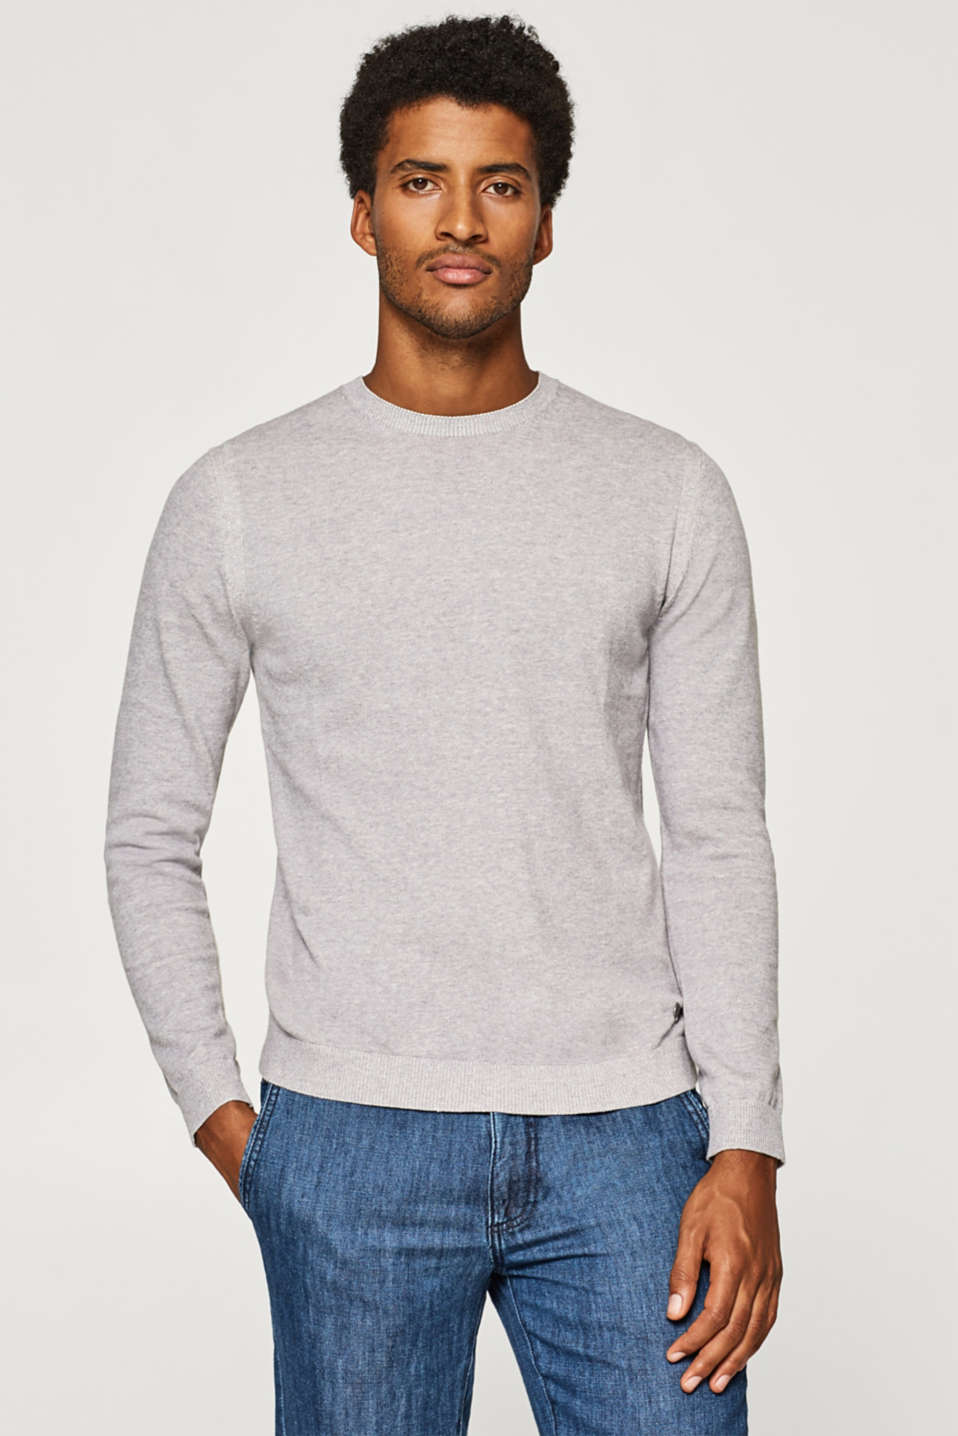 Esprit - Two-tone melange jumper in 100% cotton